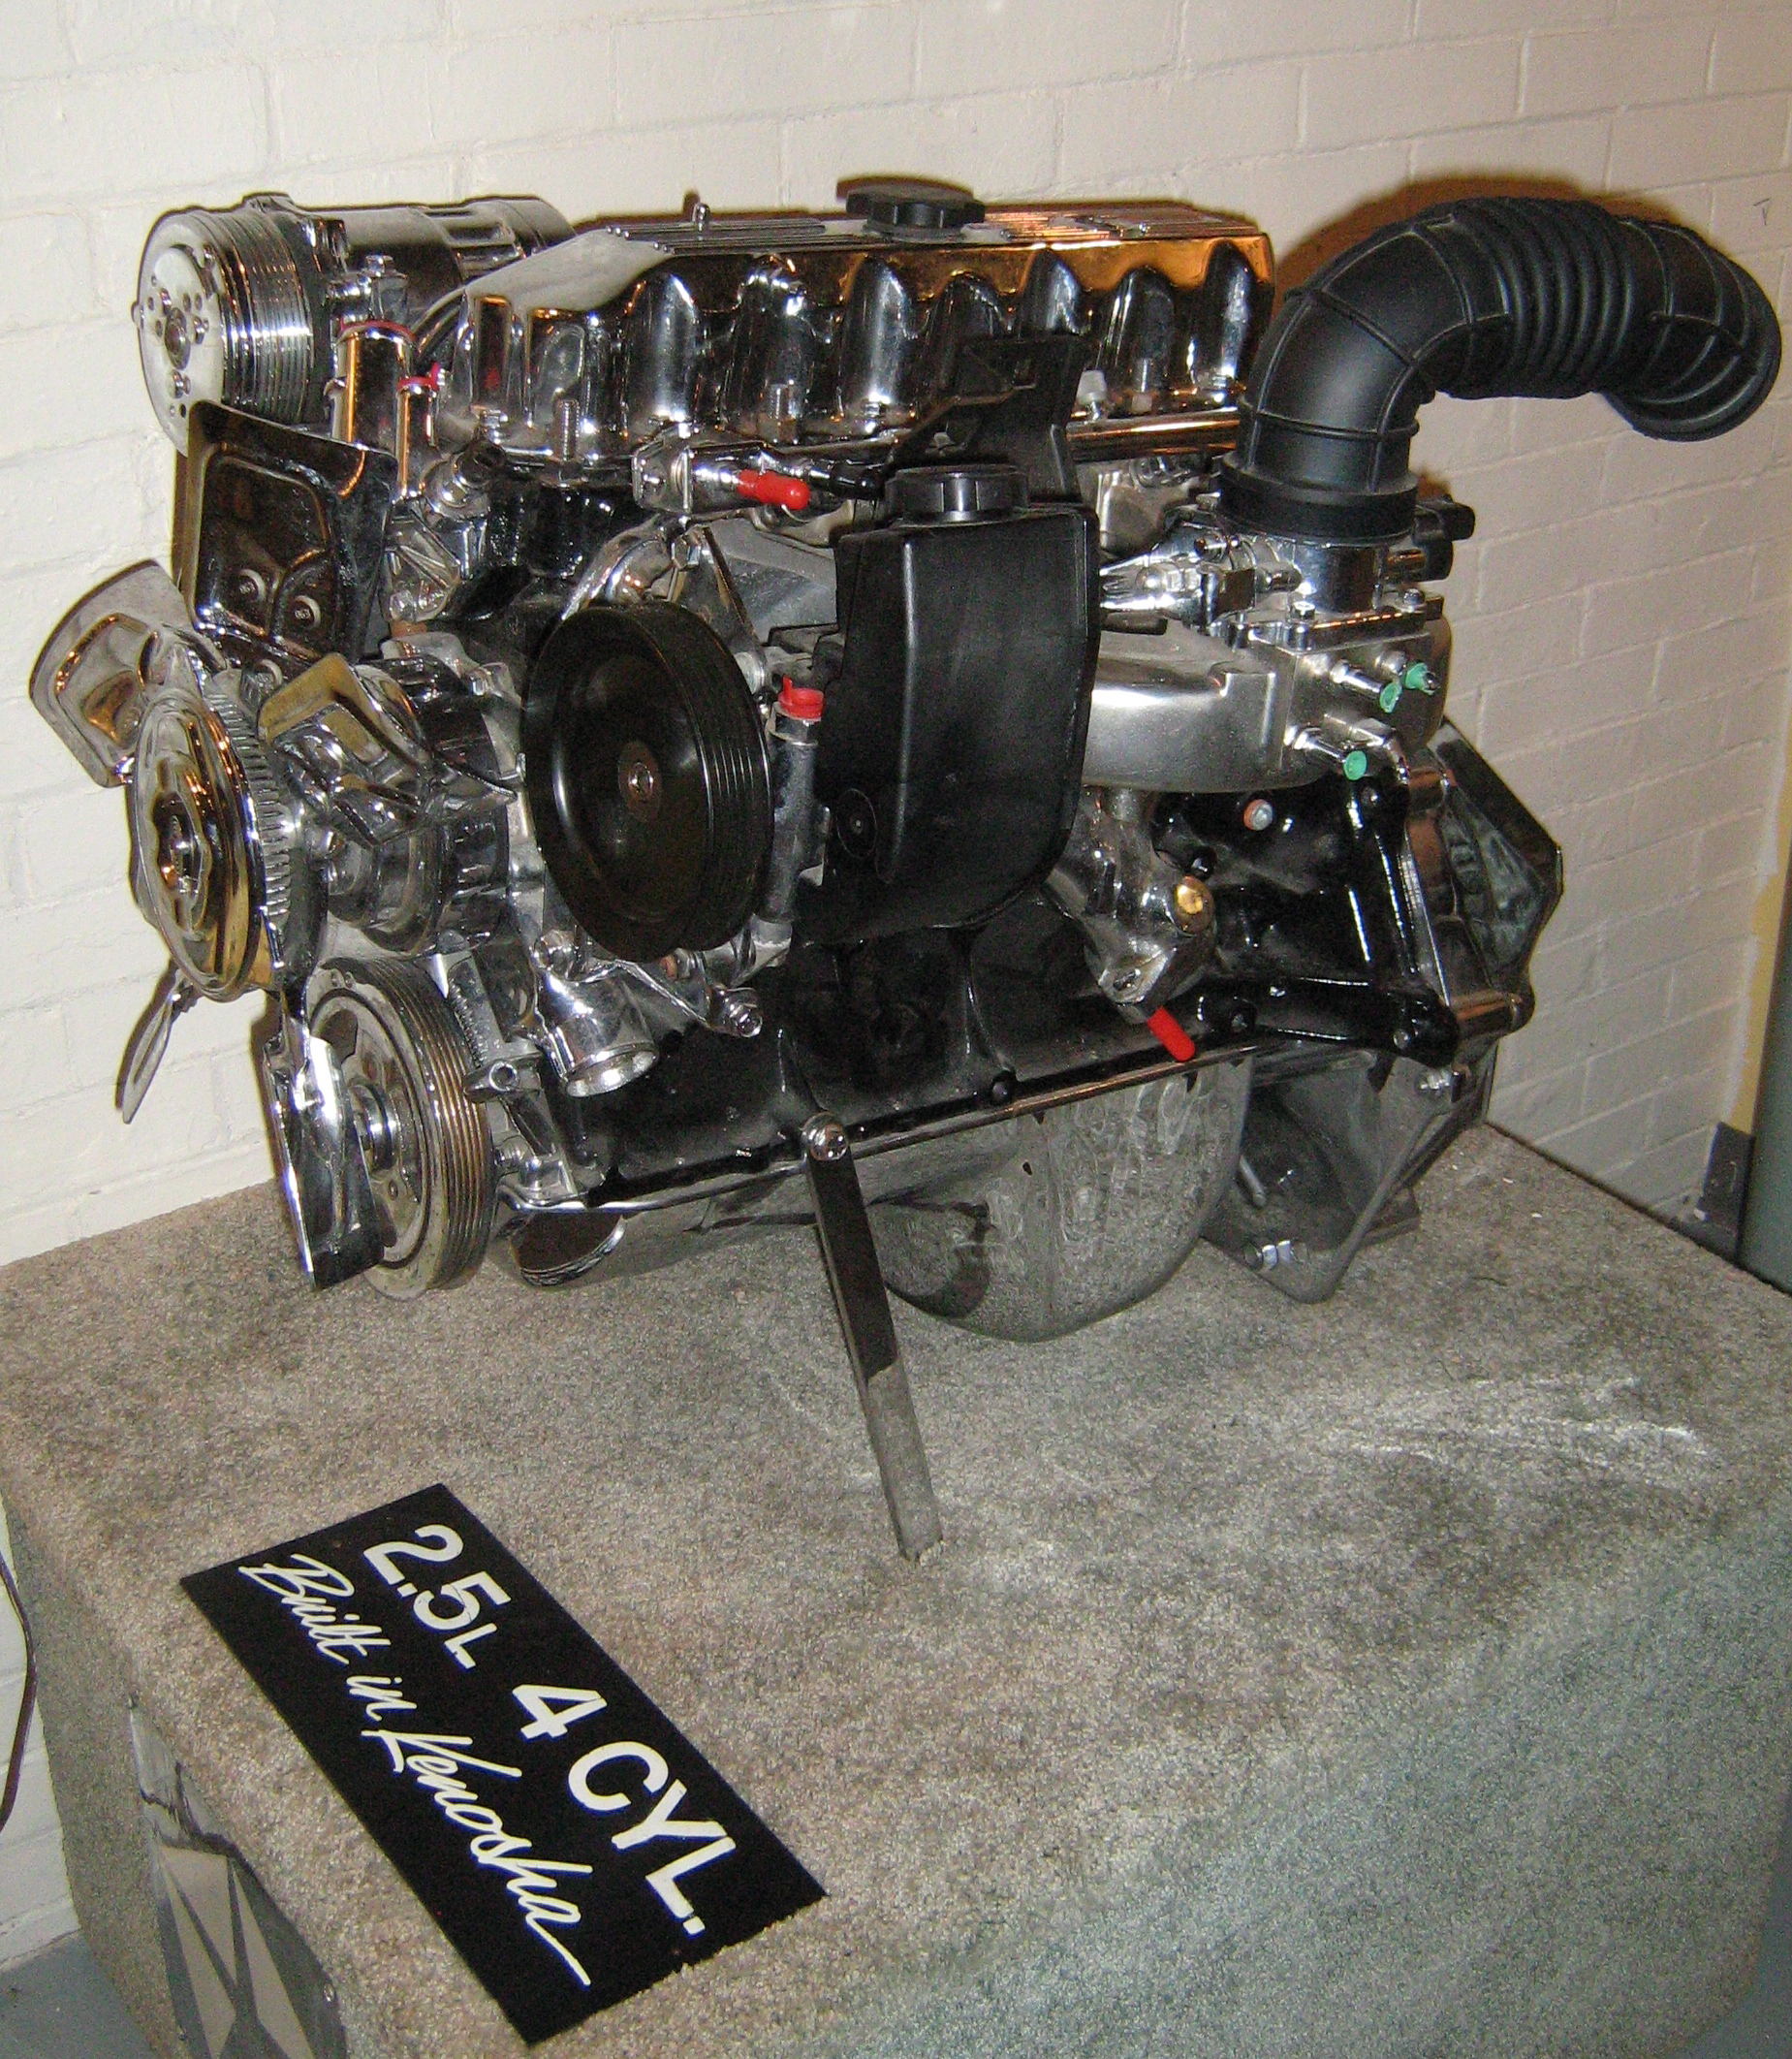 Jeep 4 cylinder engine for sale